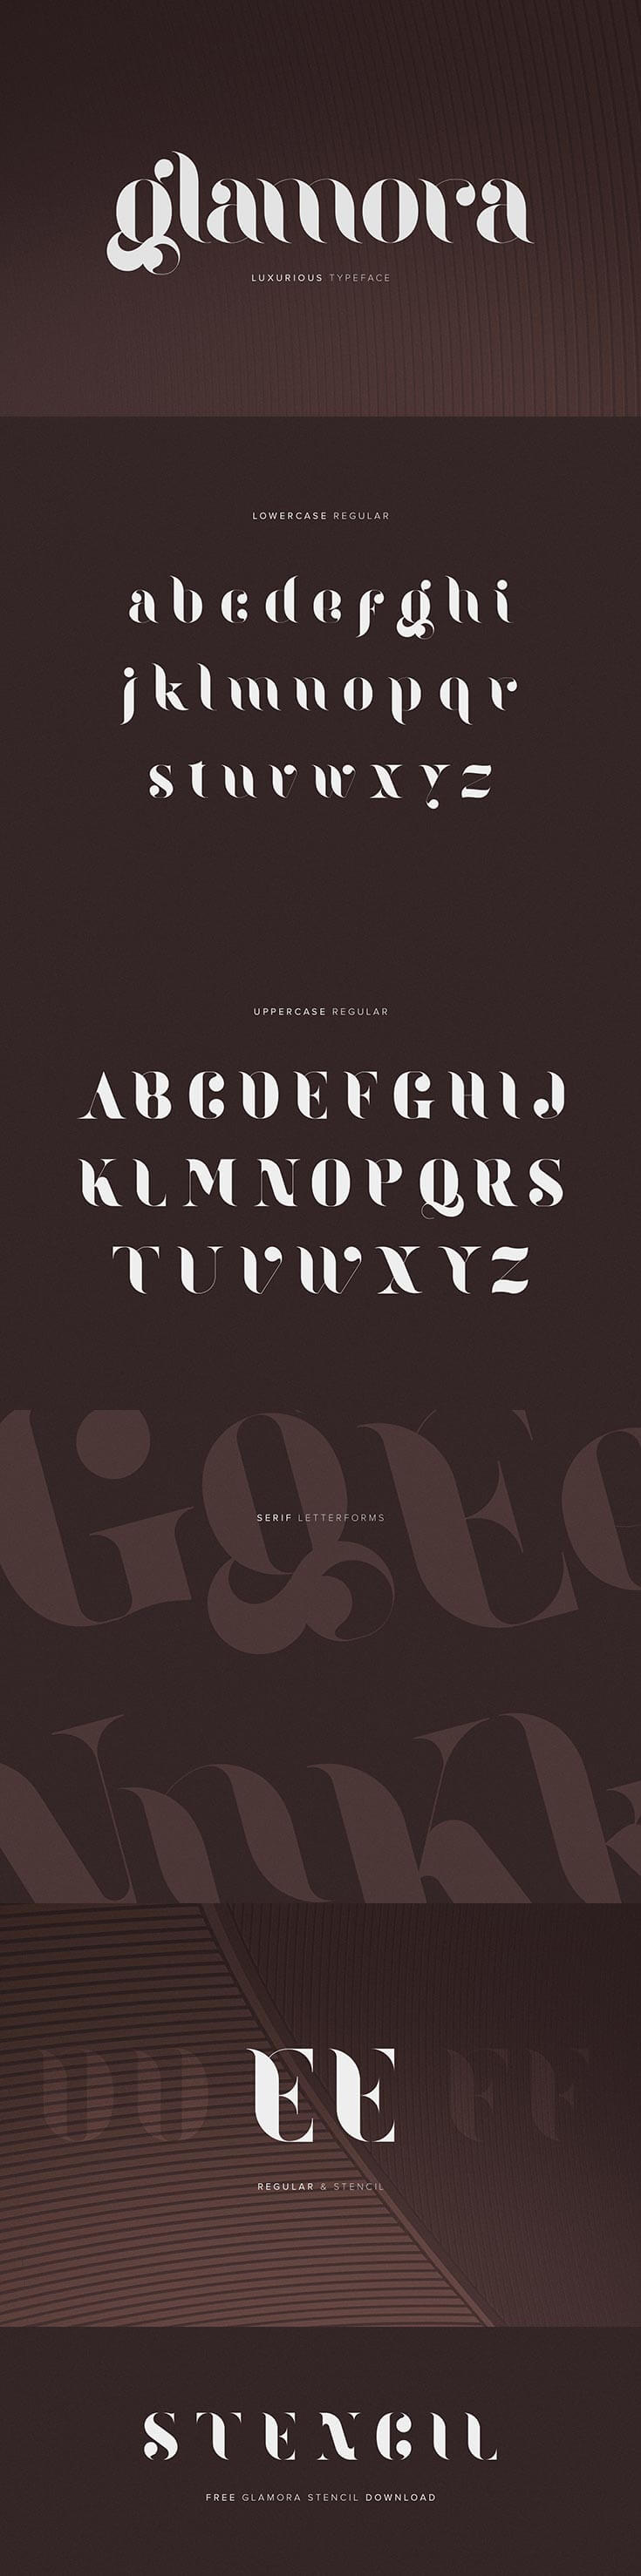 Free Glamora is a #free #serif #font which takes inspiration from classical publication headlines and title pages. The font features both uppercase and lowercase.